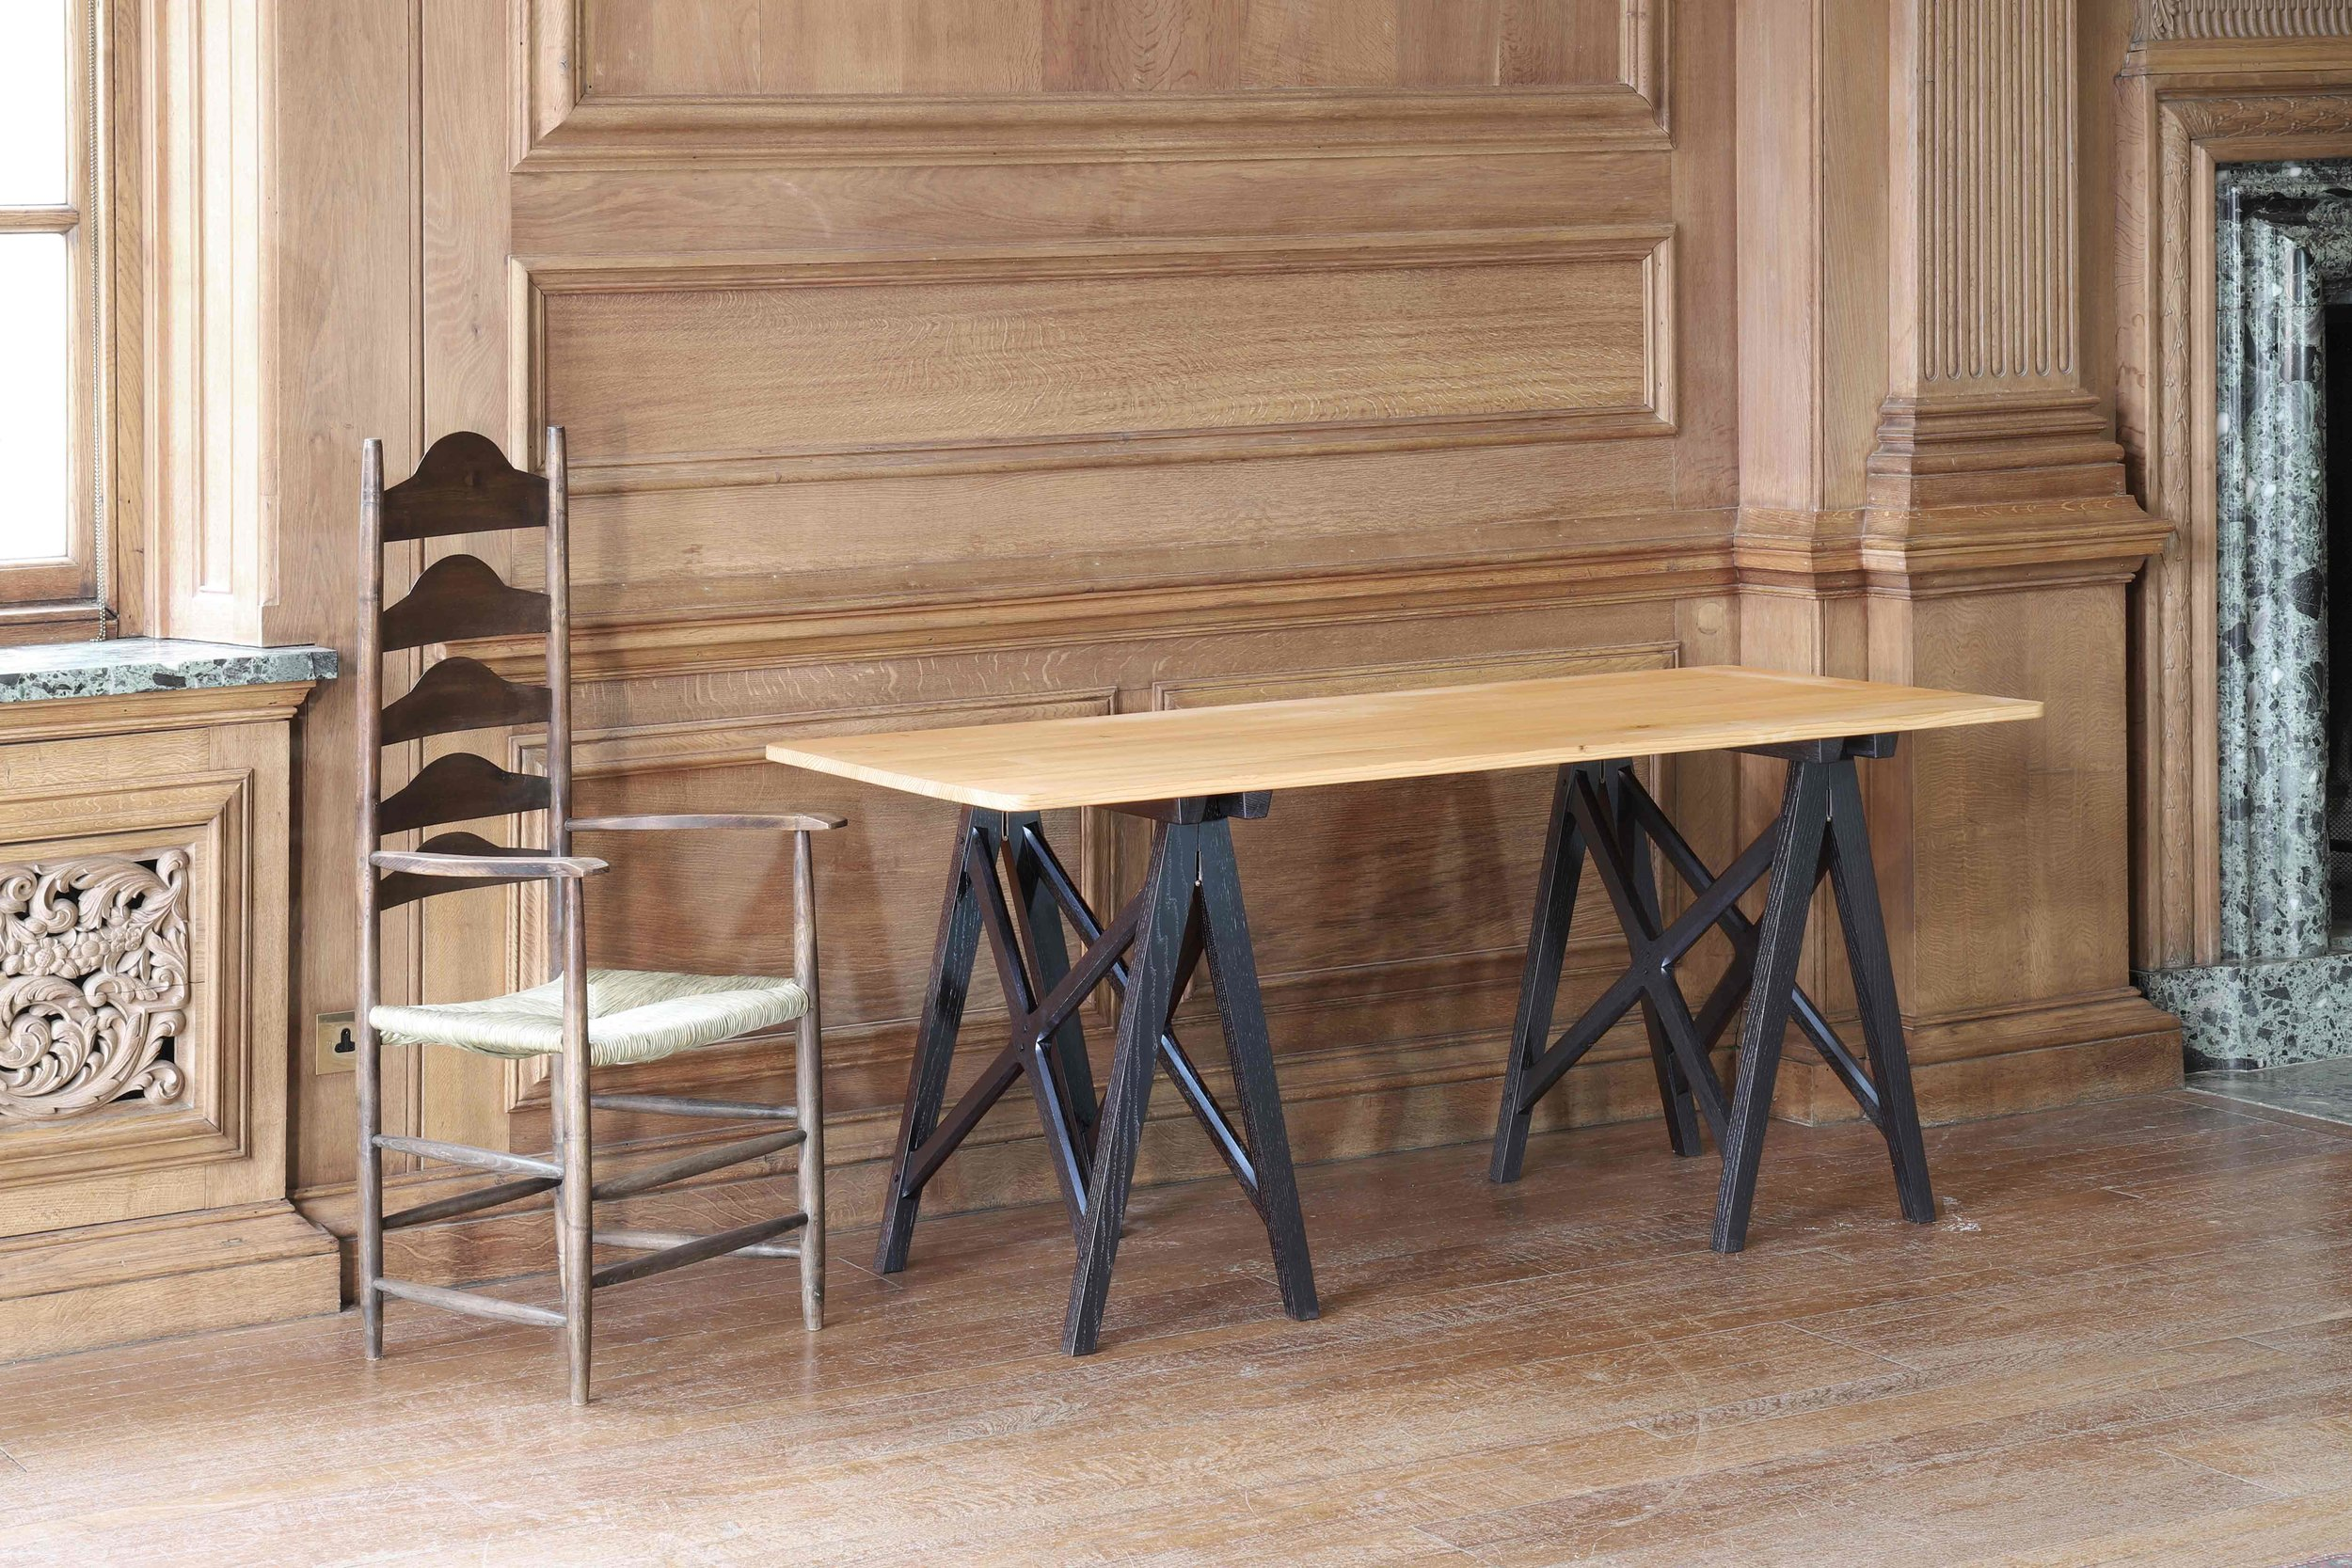 Set of twelve reproduction Ernest Gimson trestle tables. Cedar tops and ebonised oak legs, Marchmont House, Scottish Borders.